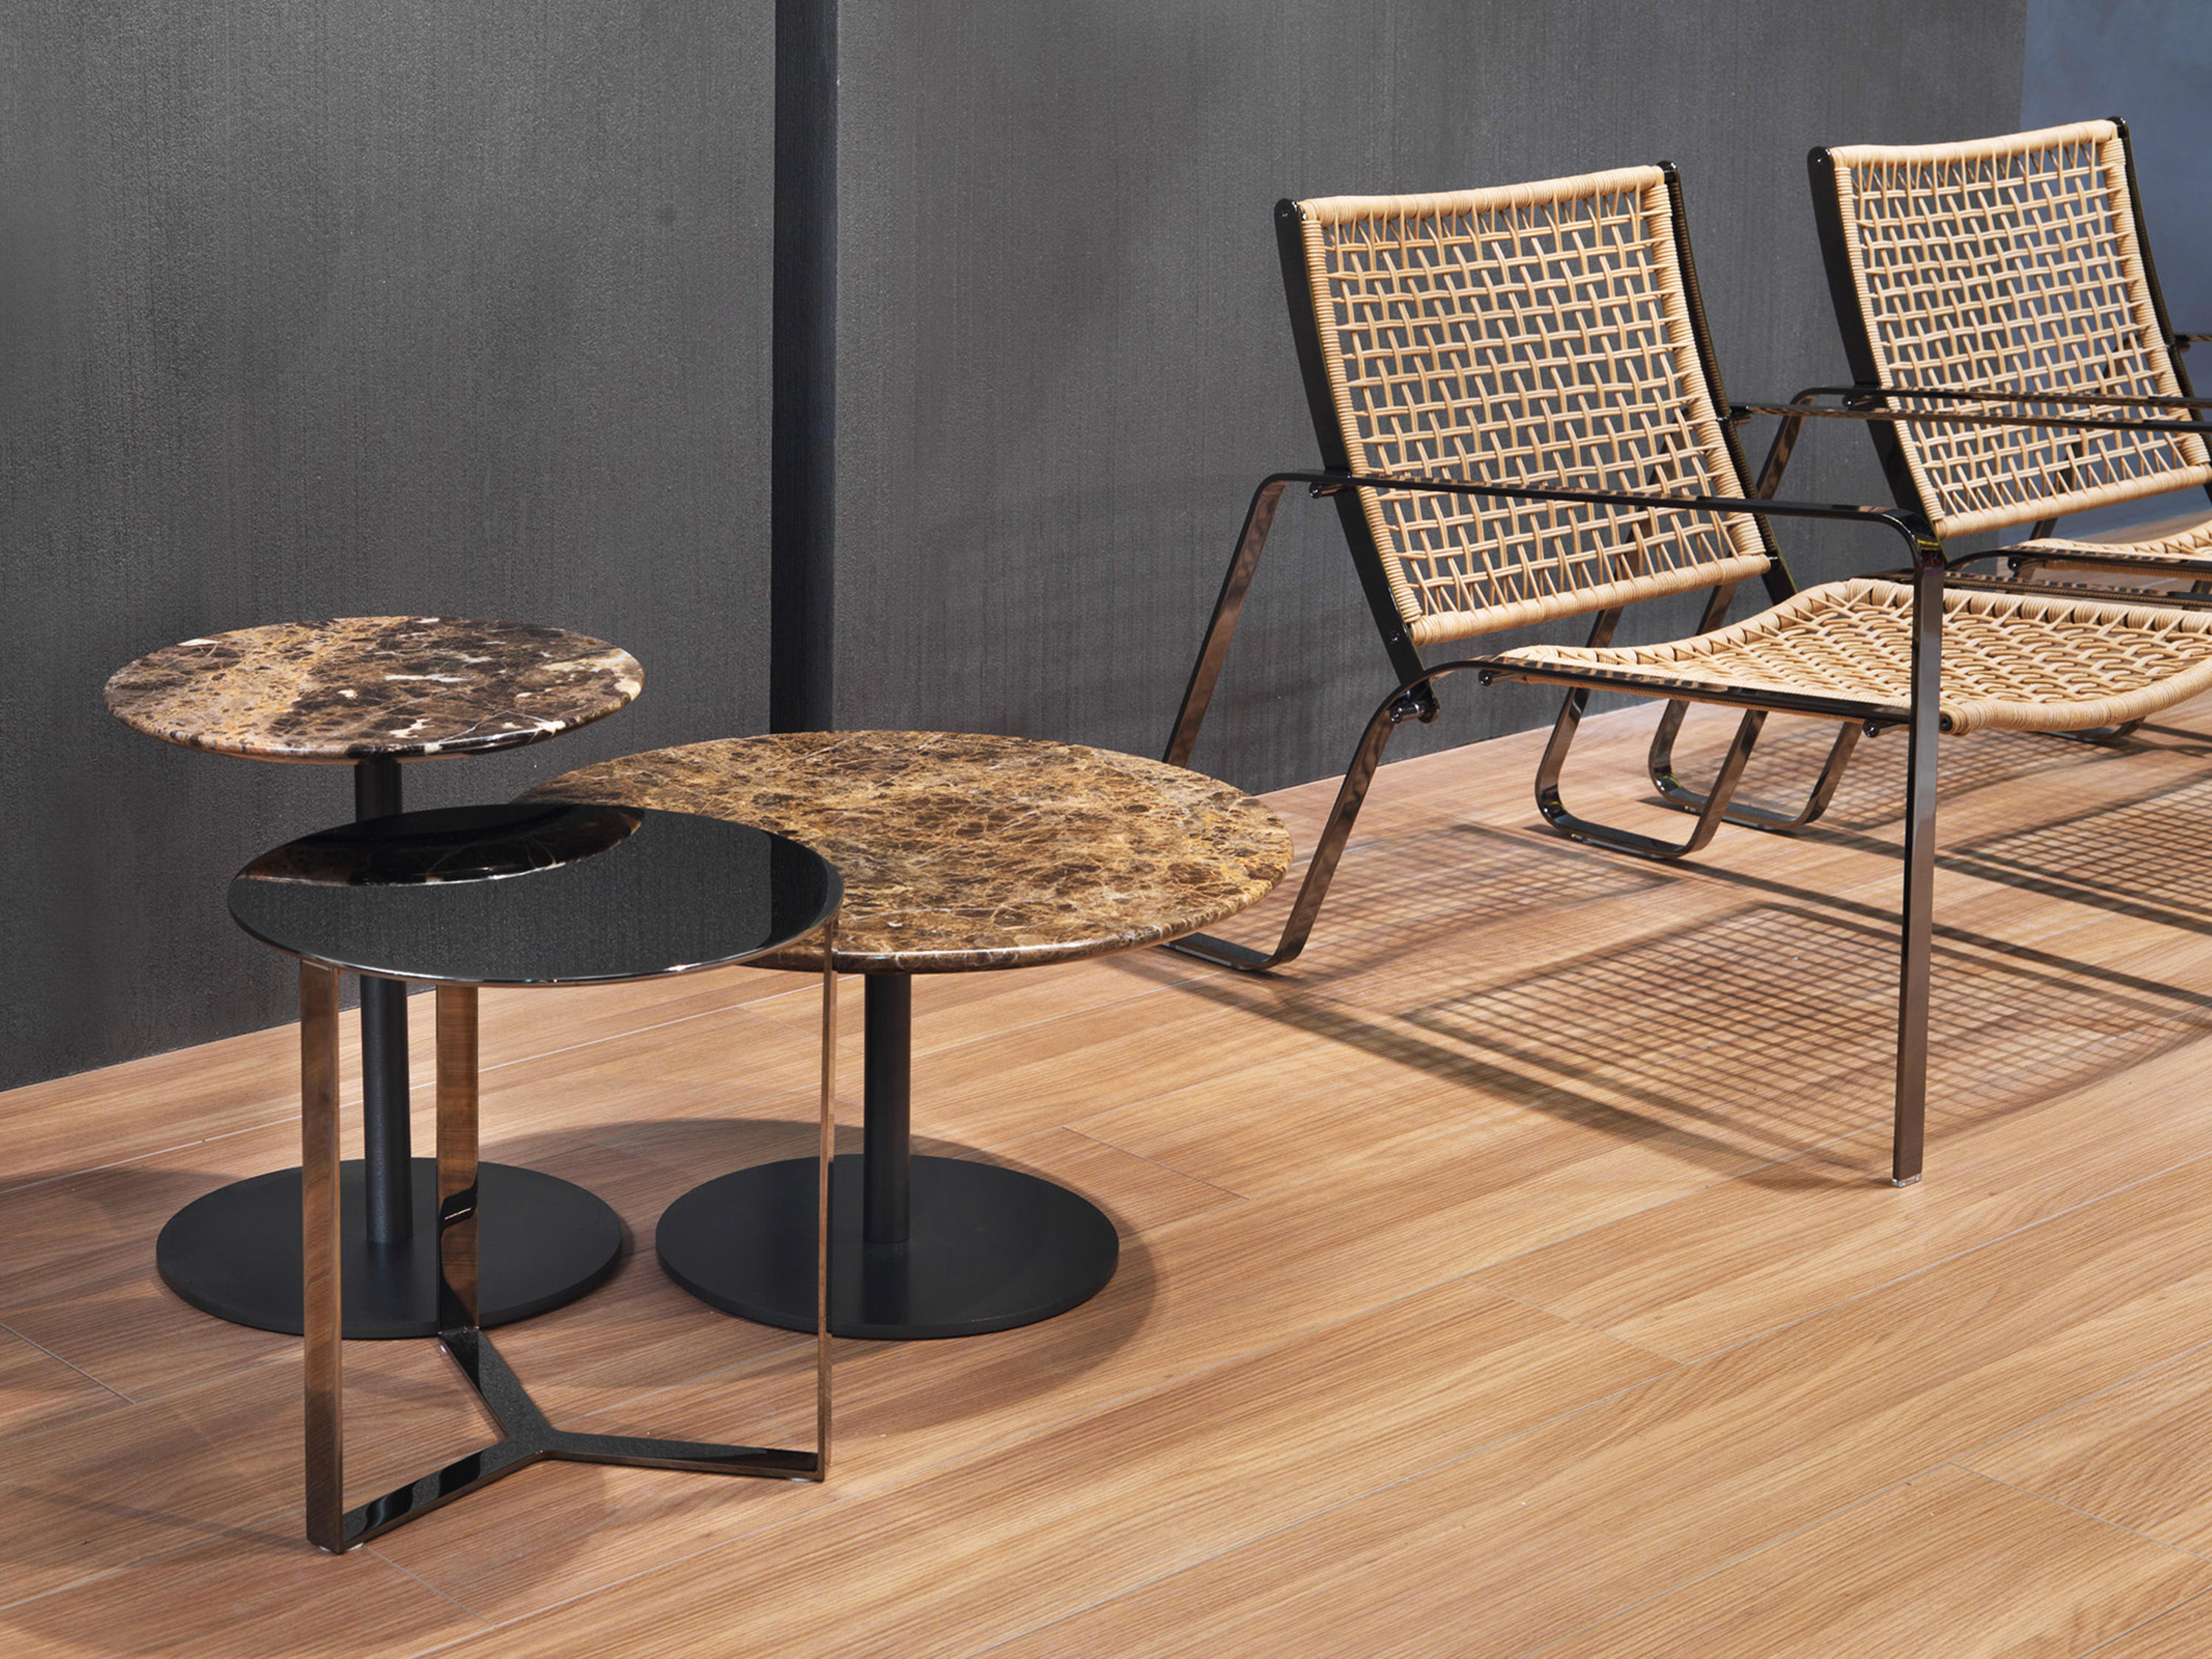 BREAKFAST COFFEE TABLES Lounge tables from Giulio Marelli